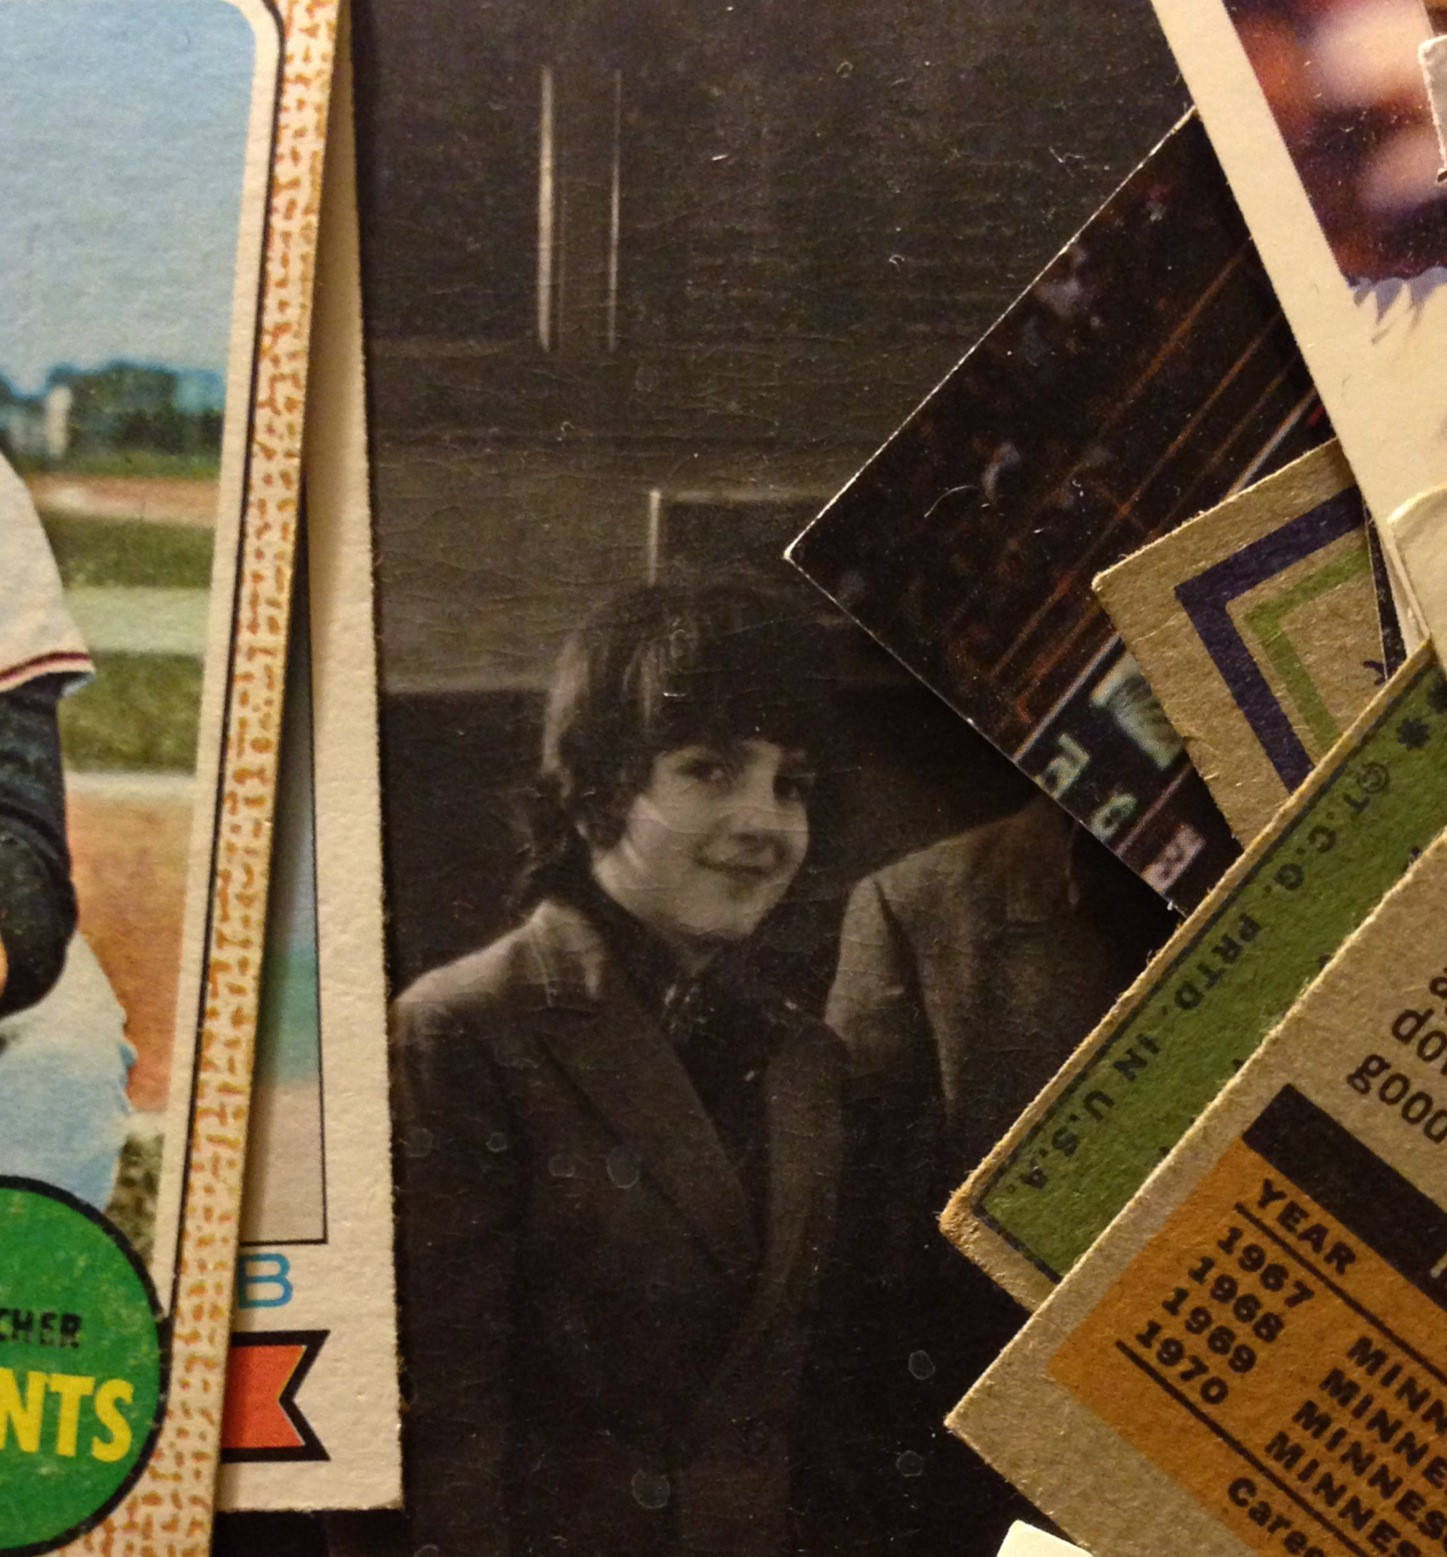 What Did I Learn From Baseball Cards This Happened To Me Medium